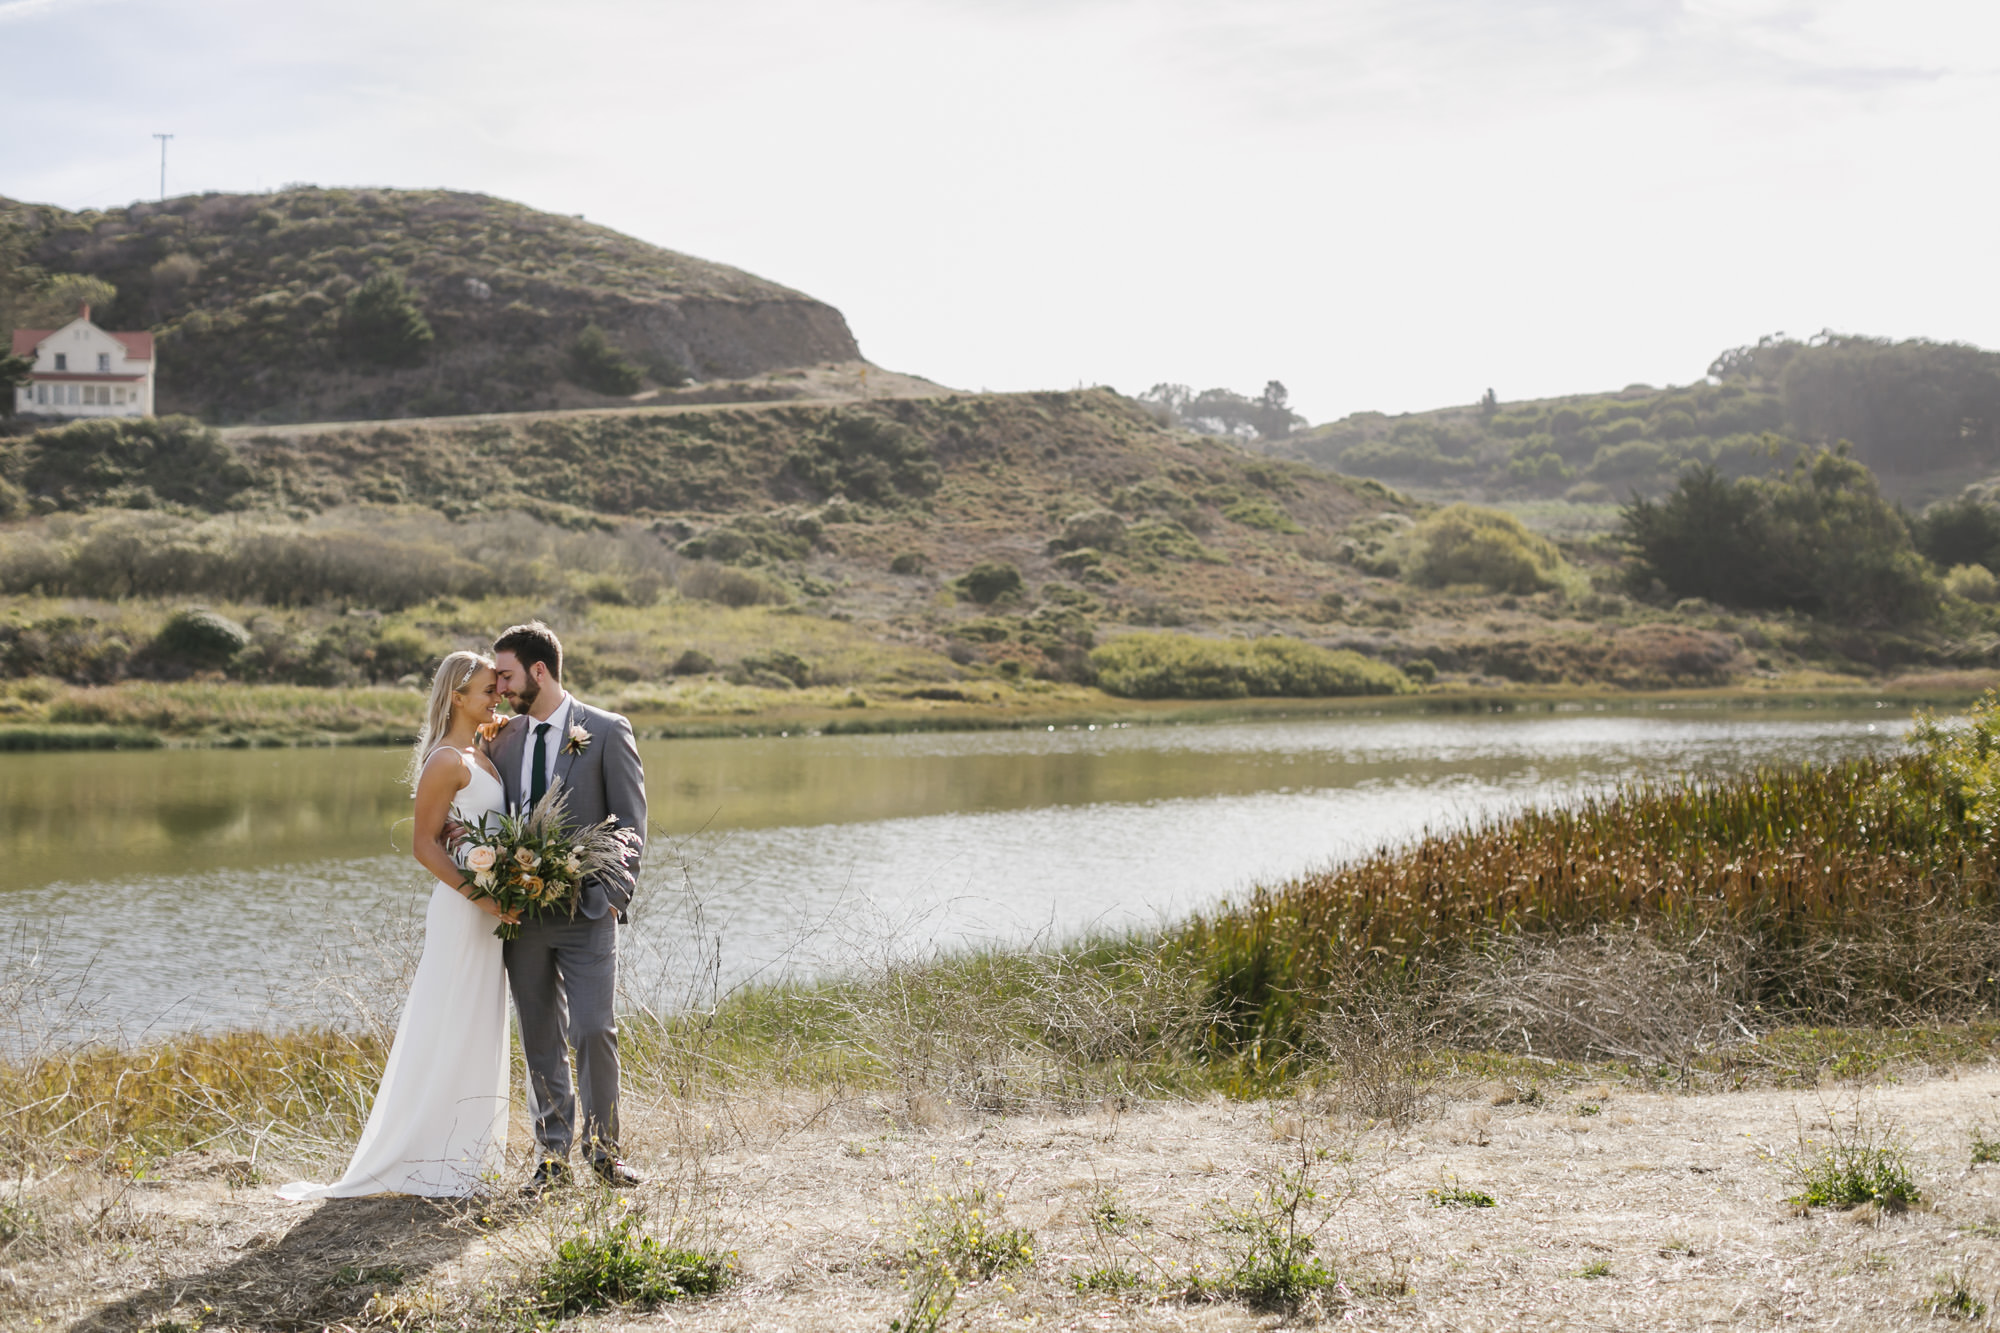 Wedding couple portraits in the Marin Headlands